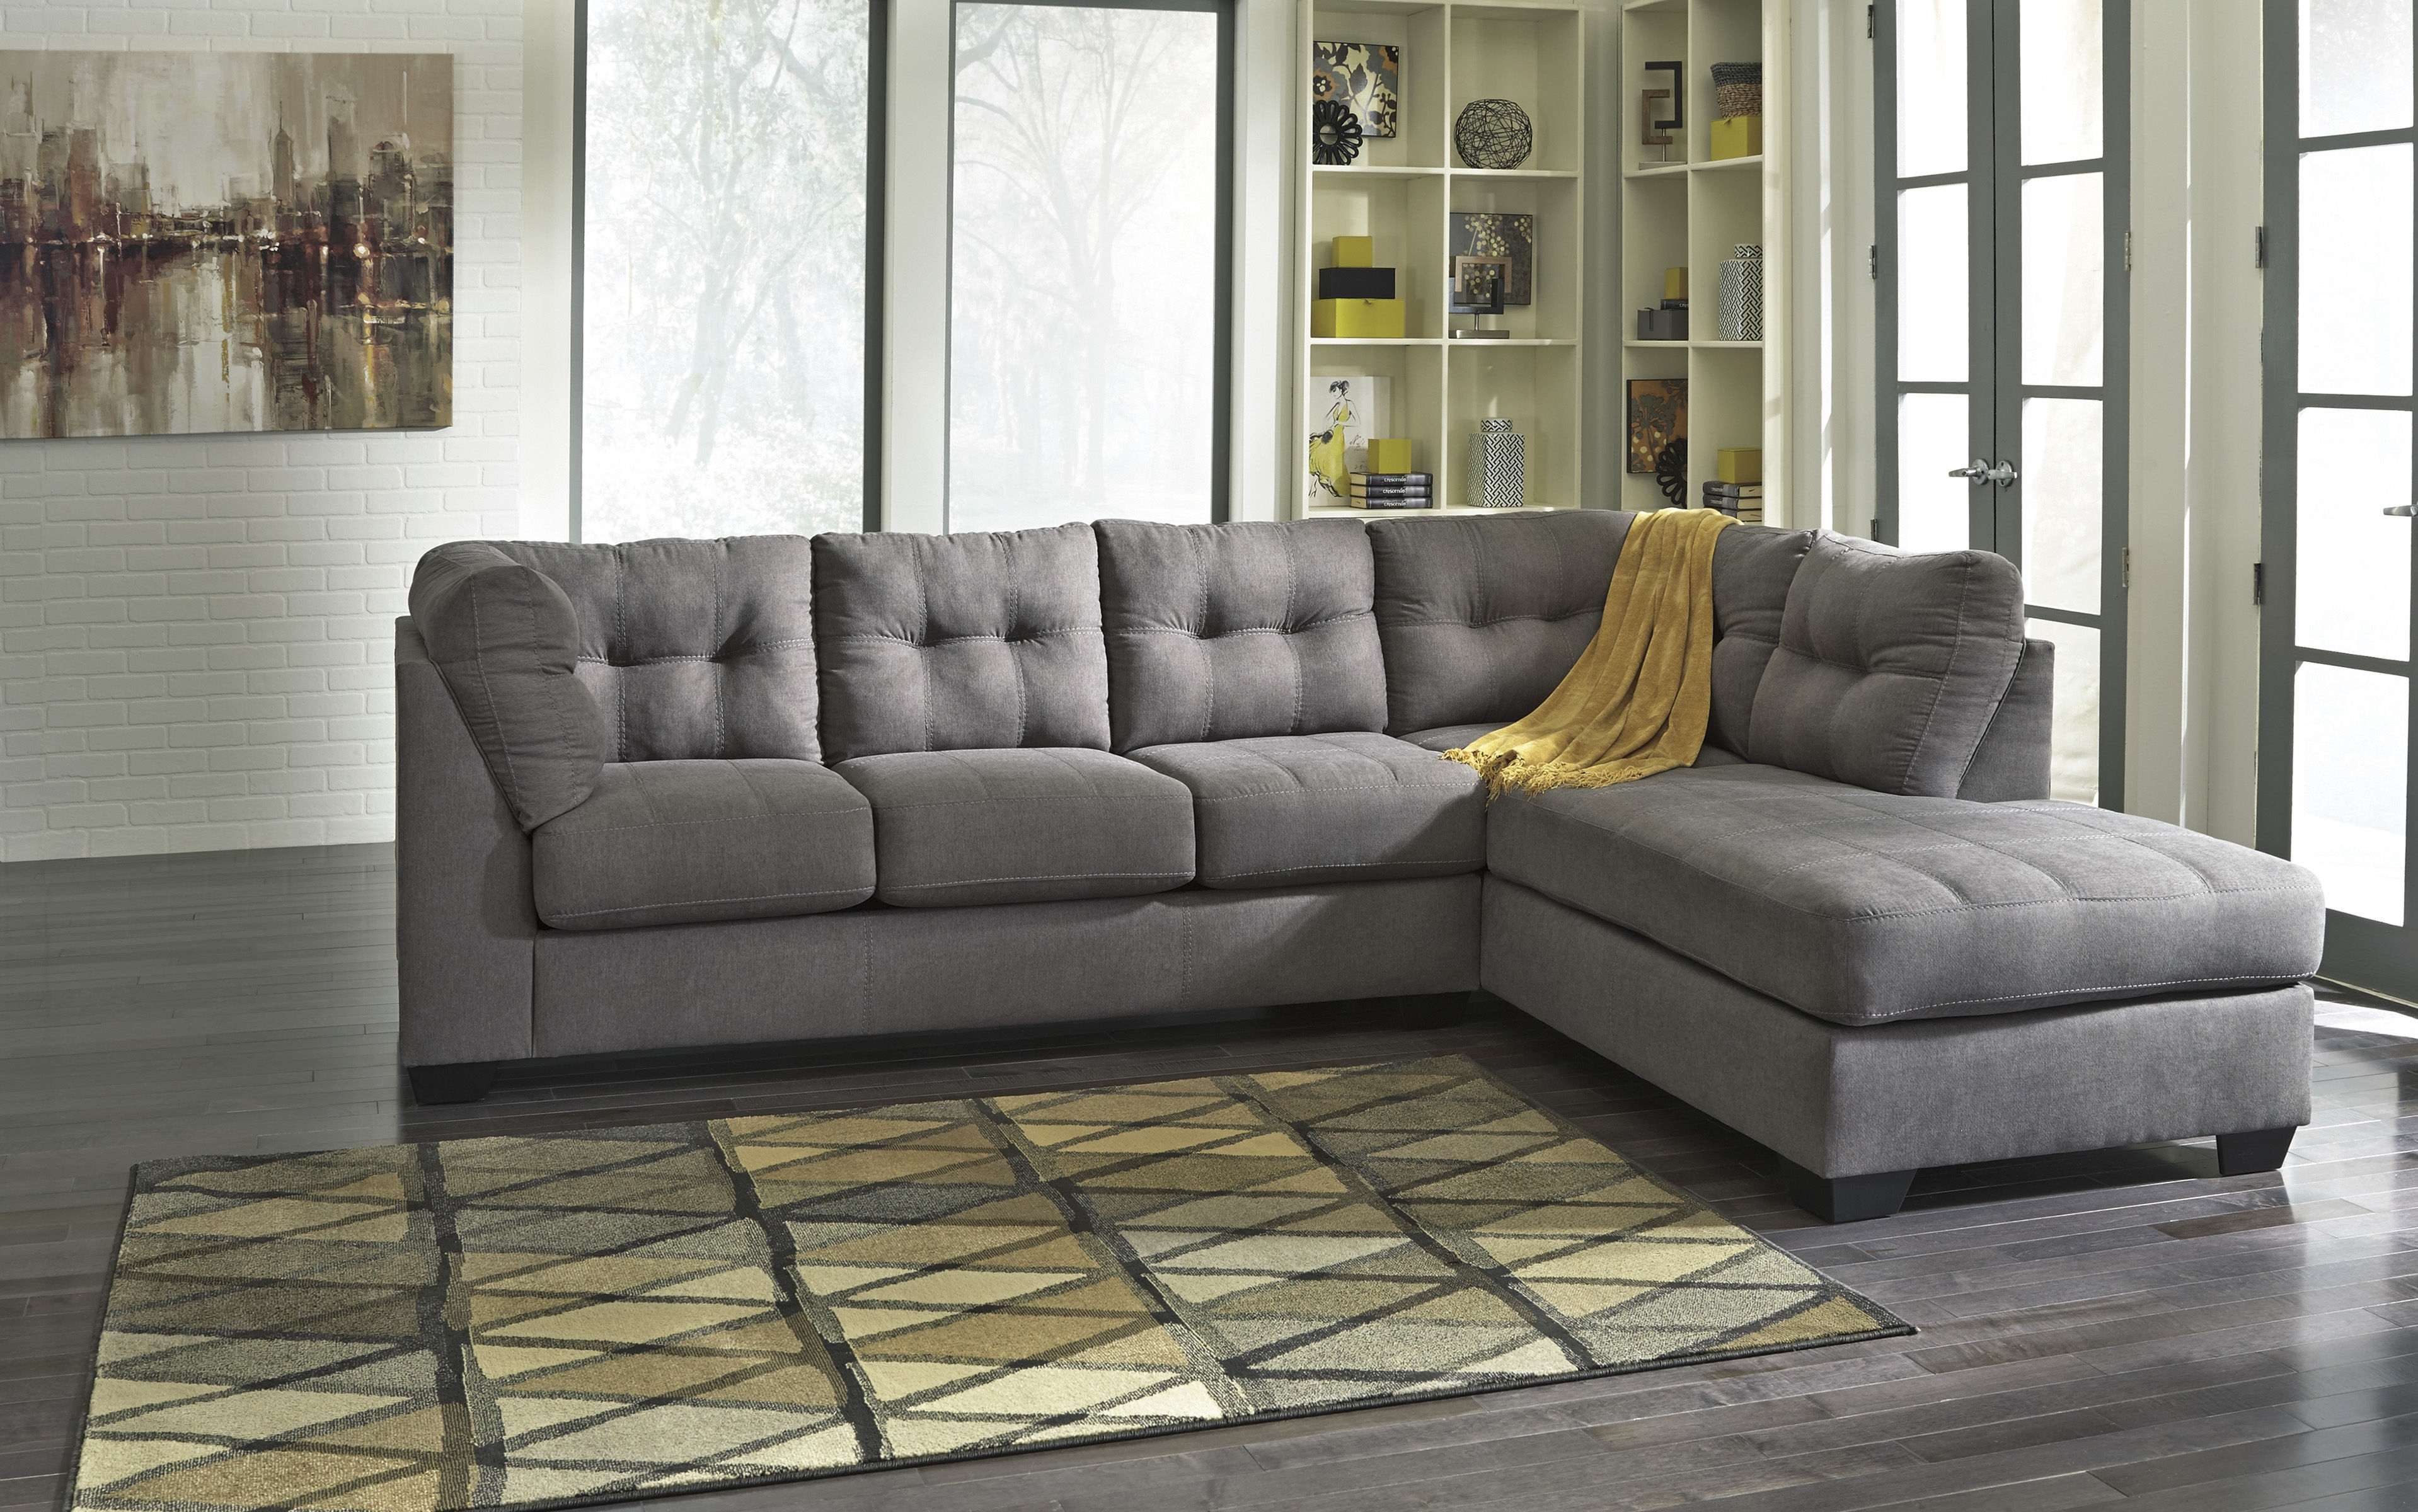 Ashley Furniture Maier Charcoal Raf Chaise Sectional | The Classy Home throughout Lucy Grey 2 Piece Sectionals With Raf Chaise (Image 5 of 30)